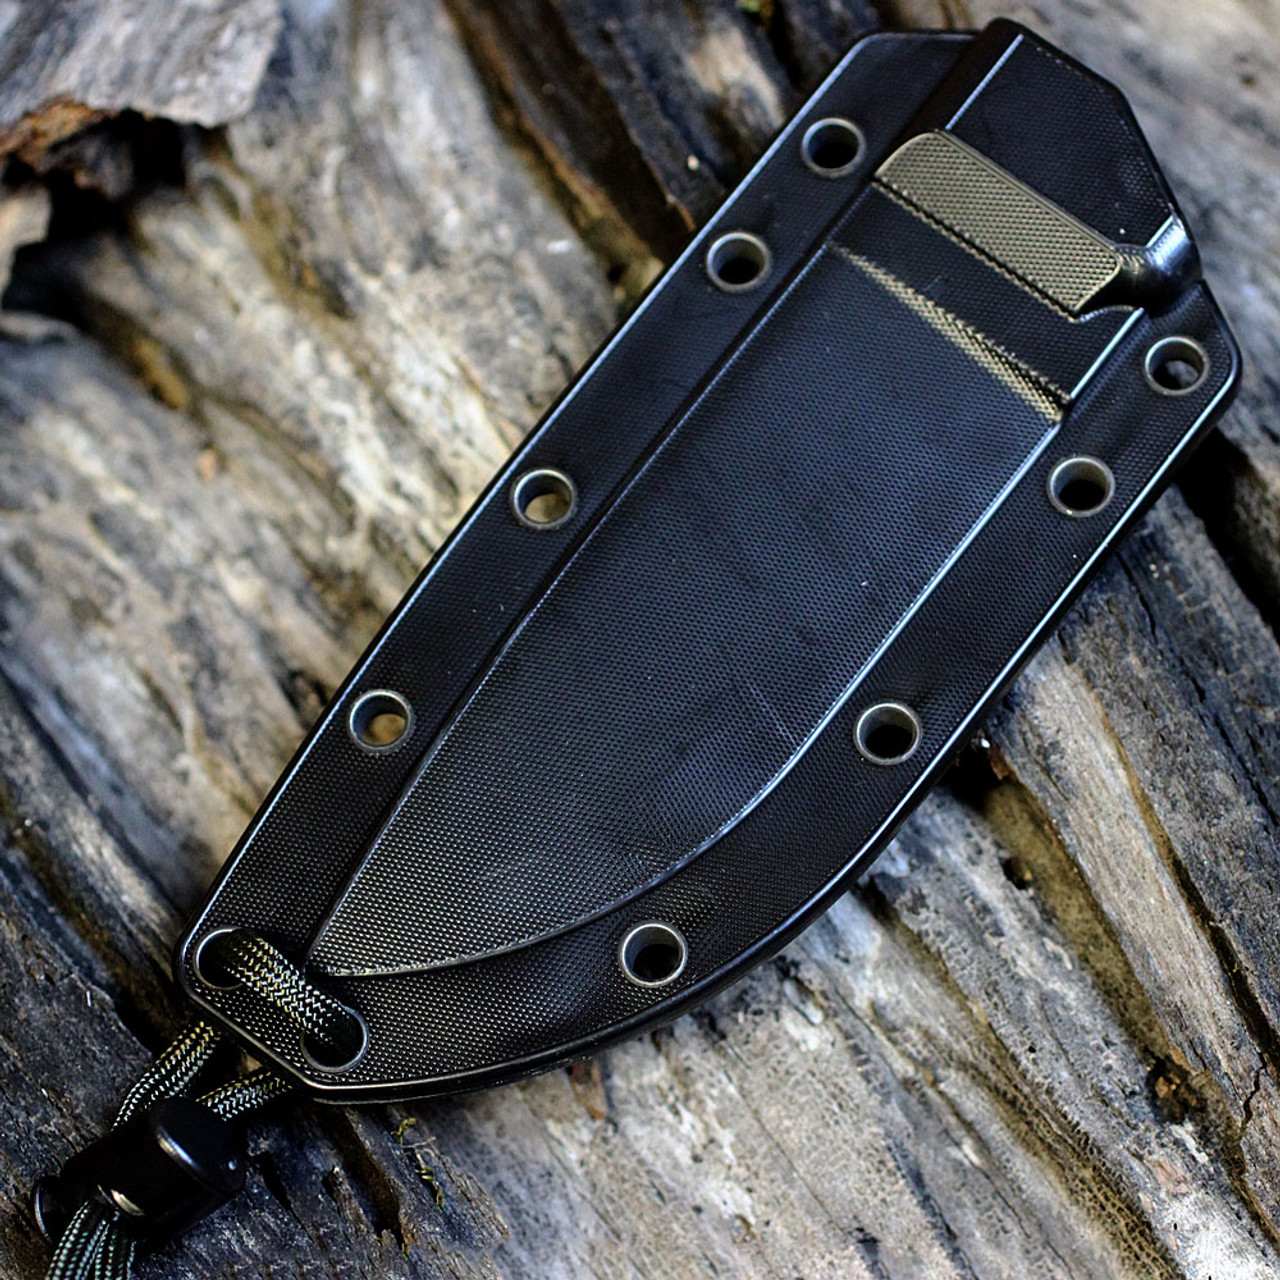 ESEE Knives, 4S-TG-B, Tactical Gray Partially Serrated Blade, G-10 Handle, Black Molded Sheath and Clip Plate